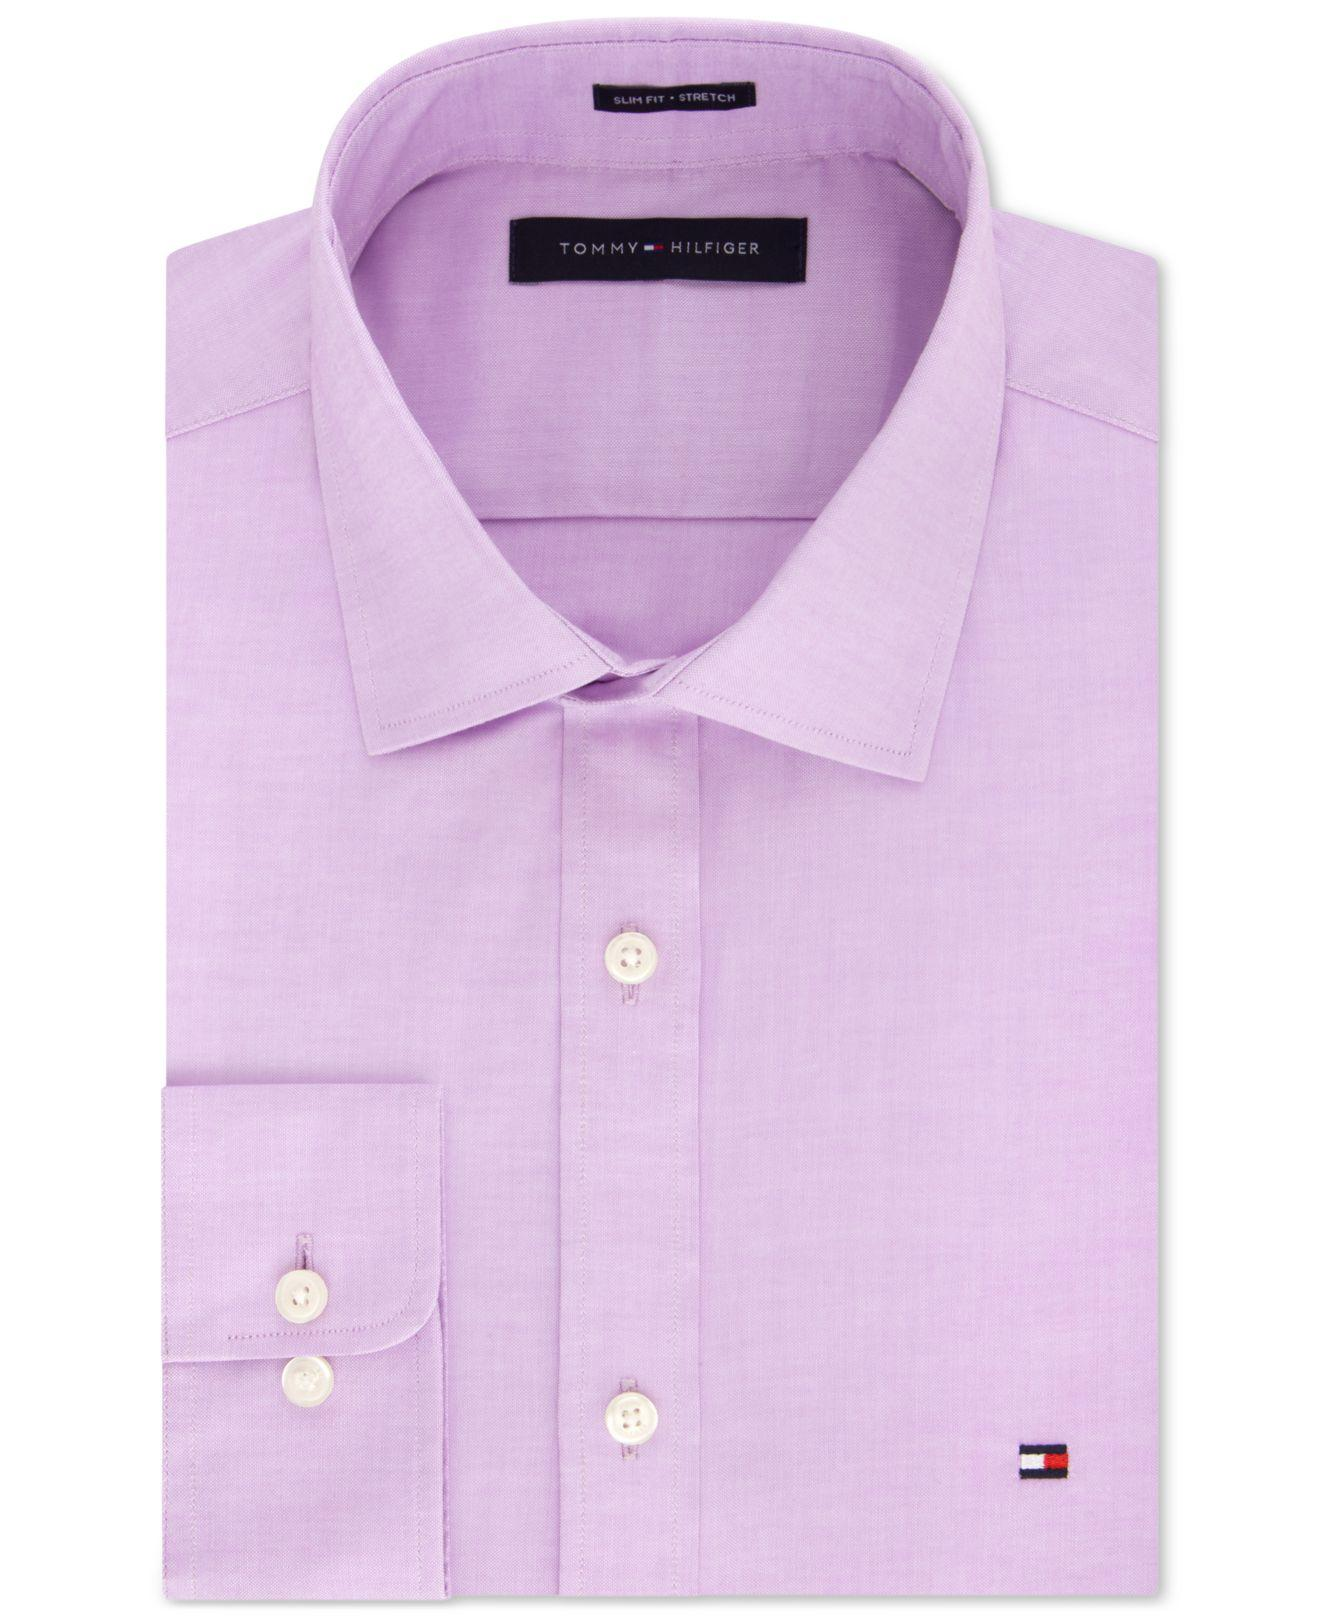 c574b6849676 Tommy Hilfiger - Purple Slim-fit Stretch Solid Dress Shirt for Men - Lyst.  View fullscreen